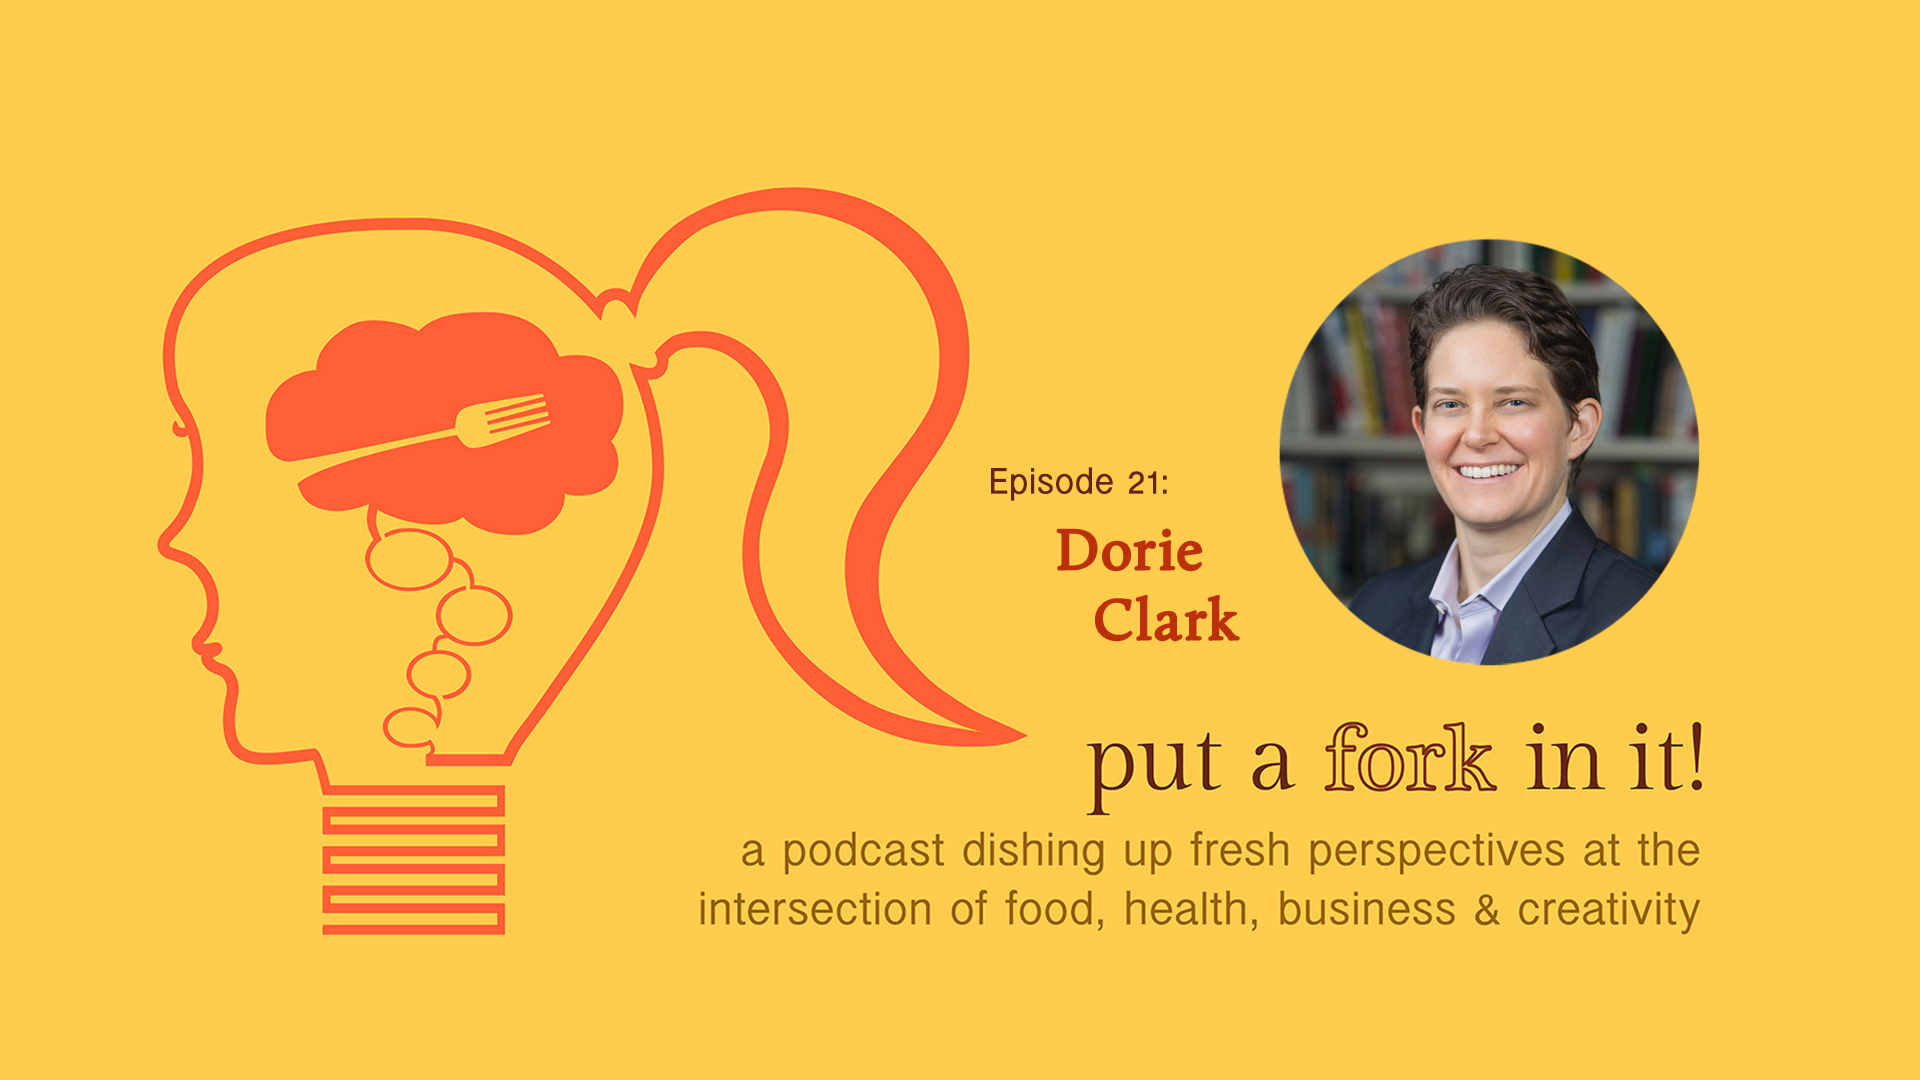 Episode 21: Dorie Clark, Washington Post Bestselling Author, contributor to Forbes & HBR, and marketing consultant